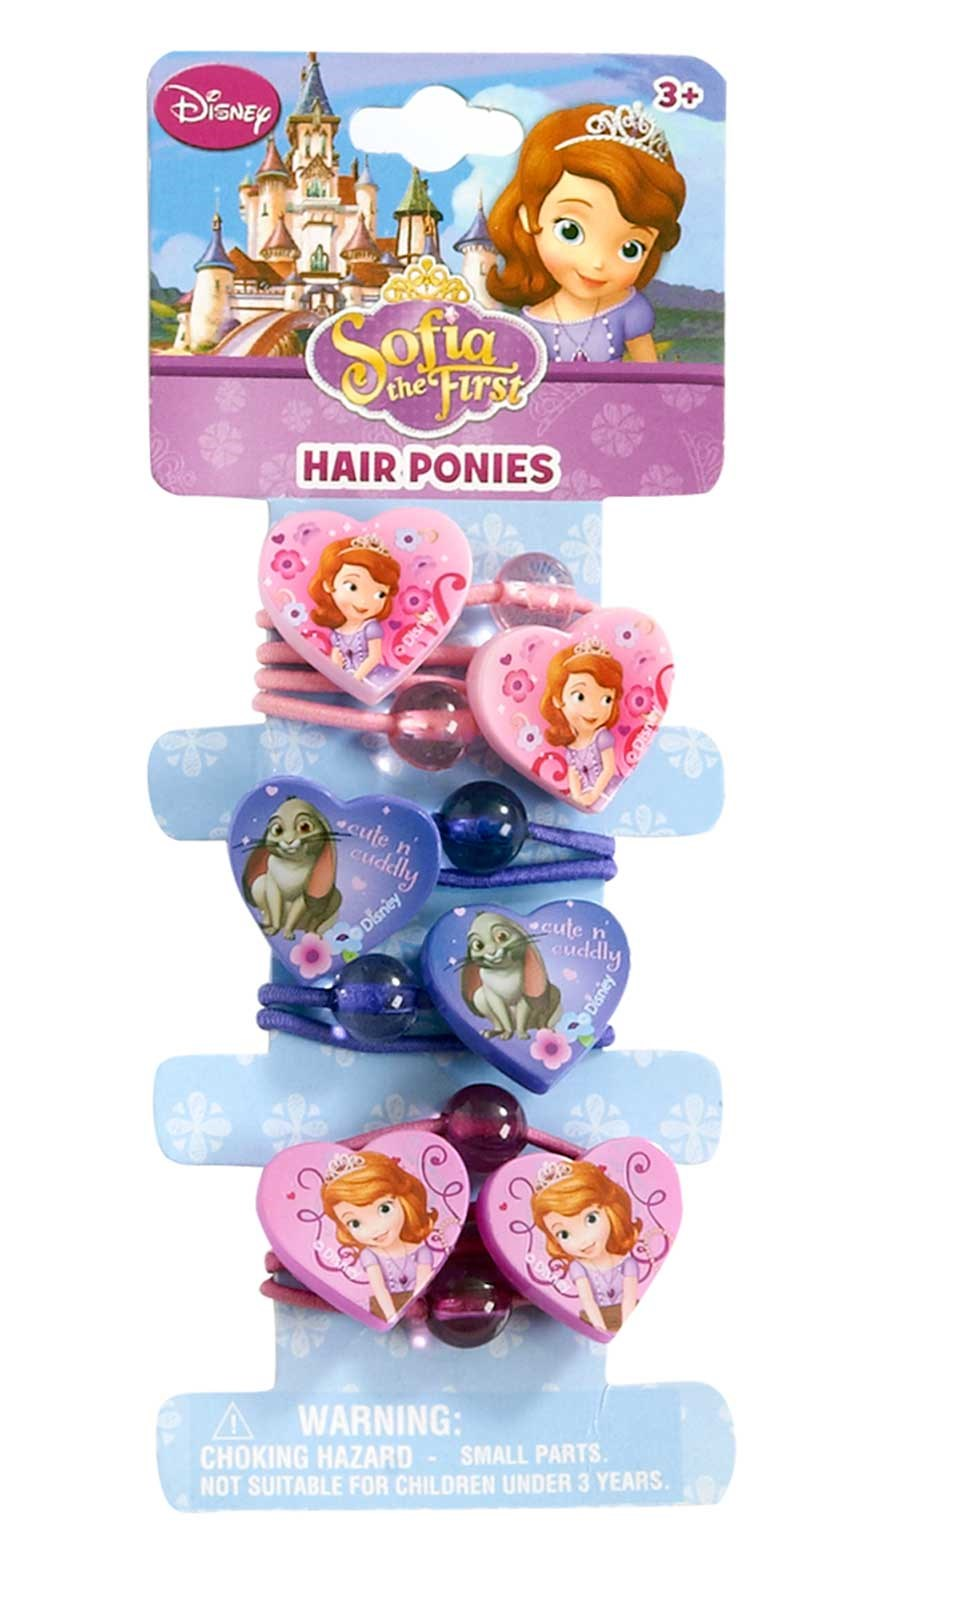 Image of Disney Junior Sofia the First Hair Ponies